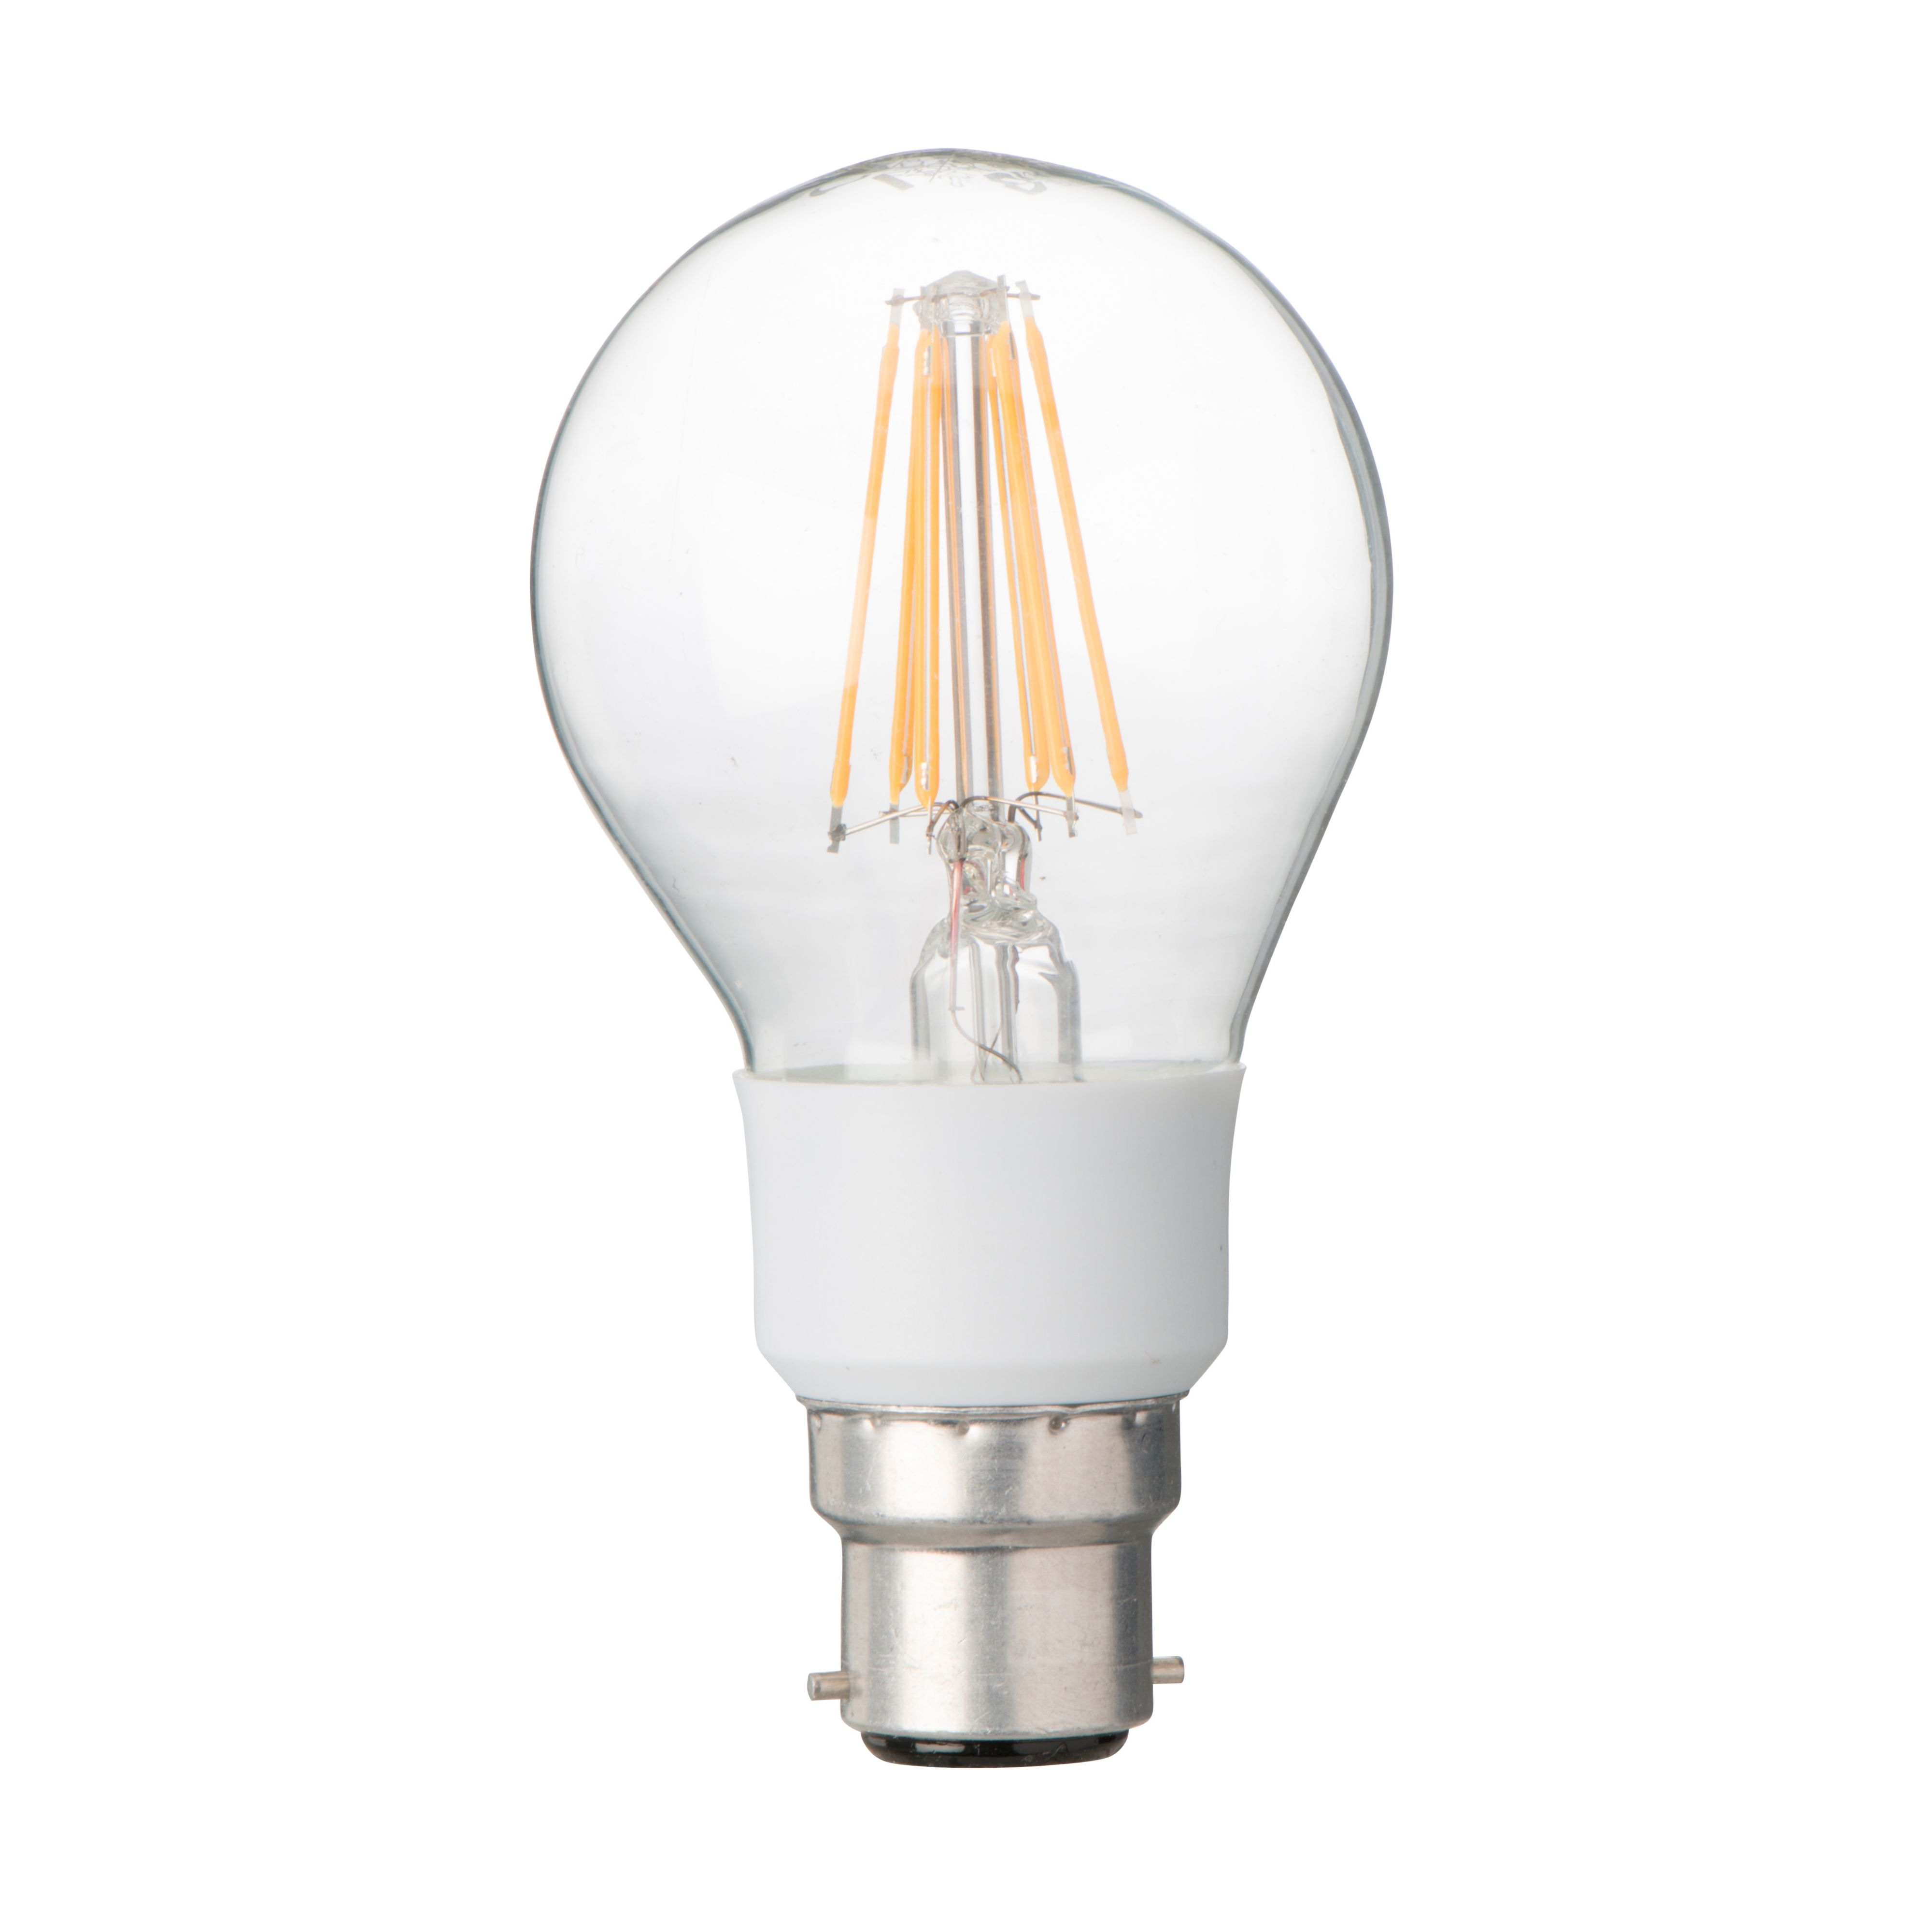 Diall B22 7W LED Filament Dimmable Classic Light Bulb